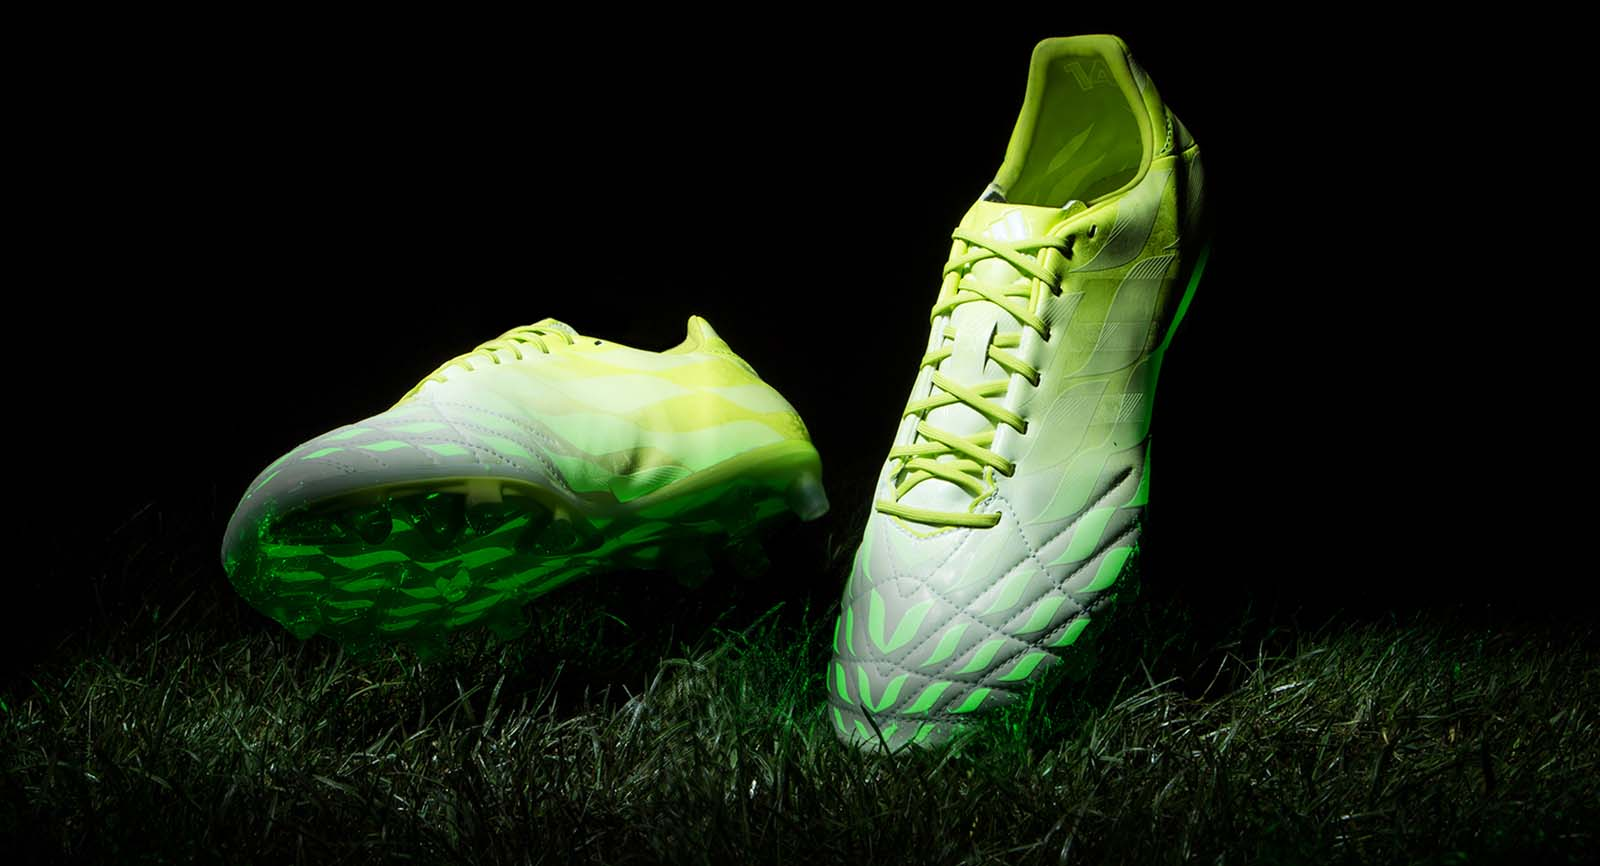 official photos 717a5 f9a14 ADIDAS ADIPURE 11PRO HUNT BOOT REVEALED - GLOW IN THE DARK